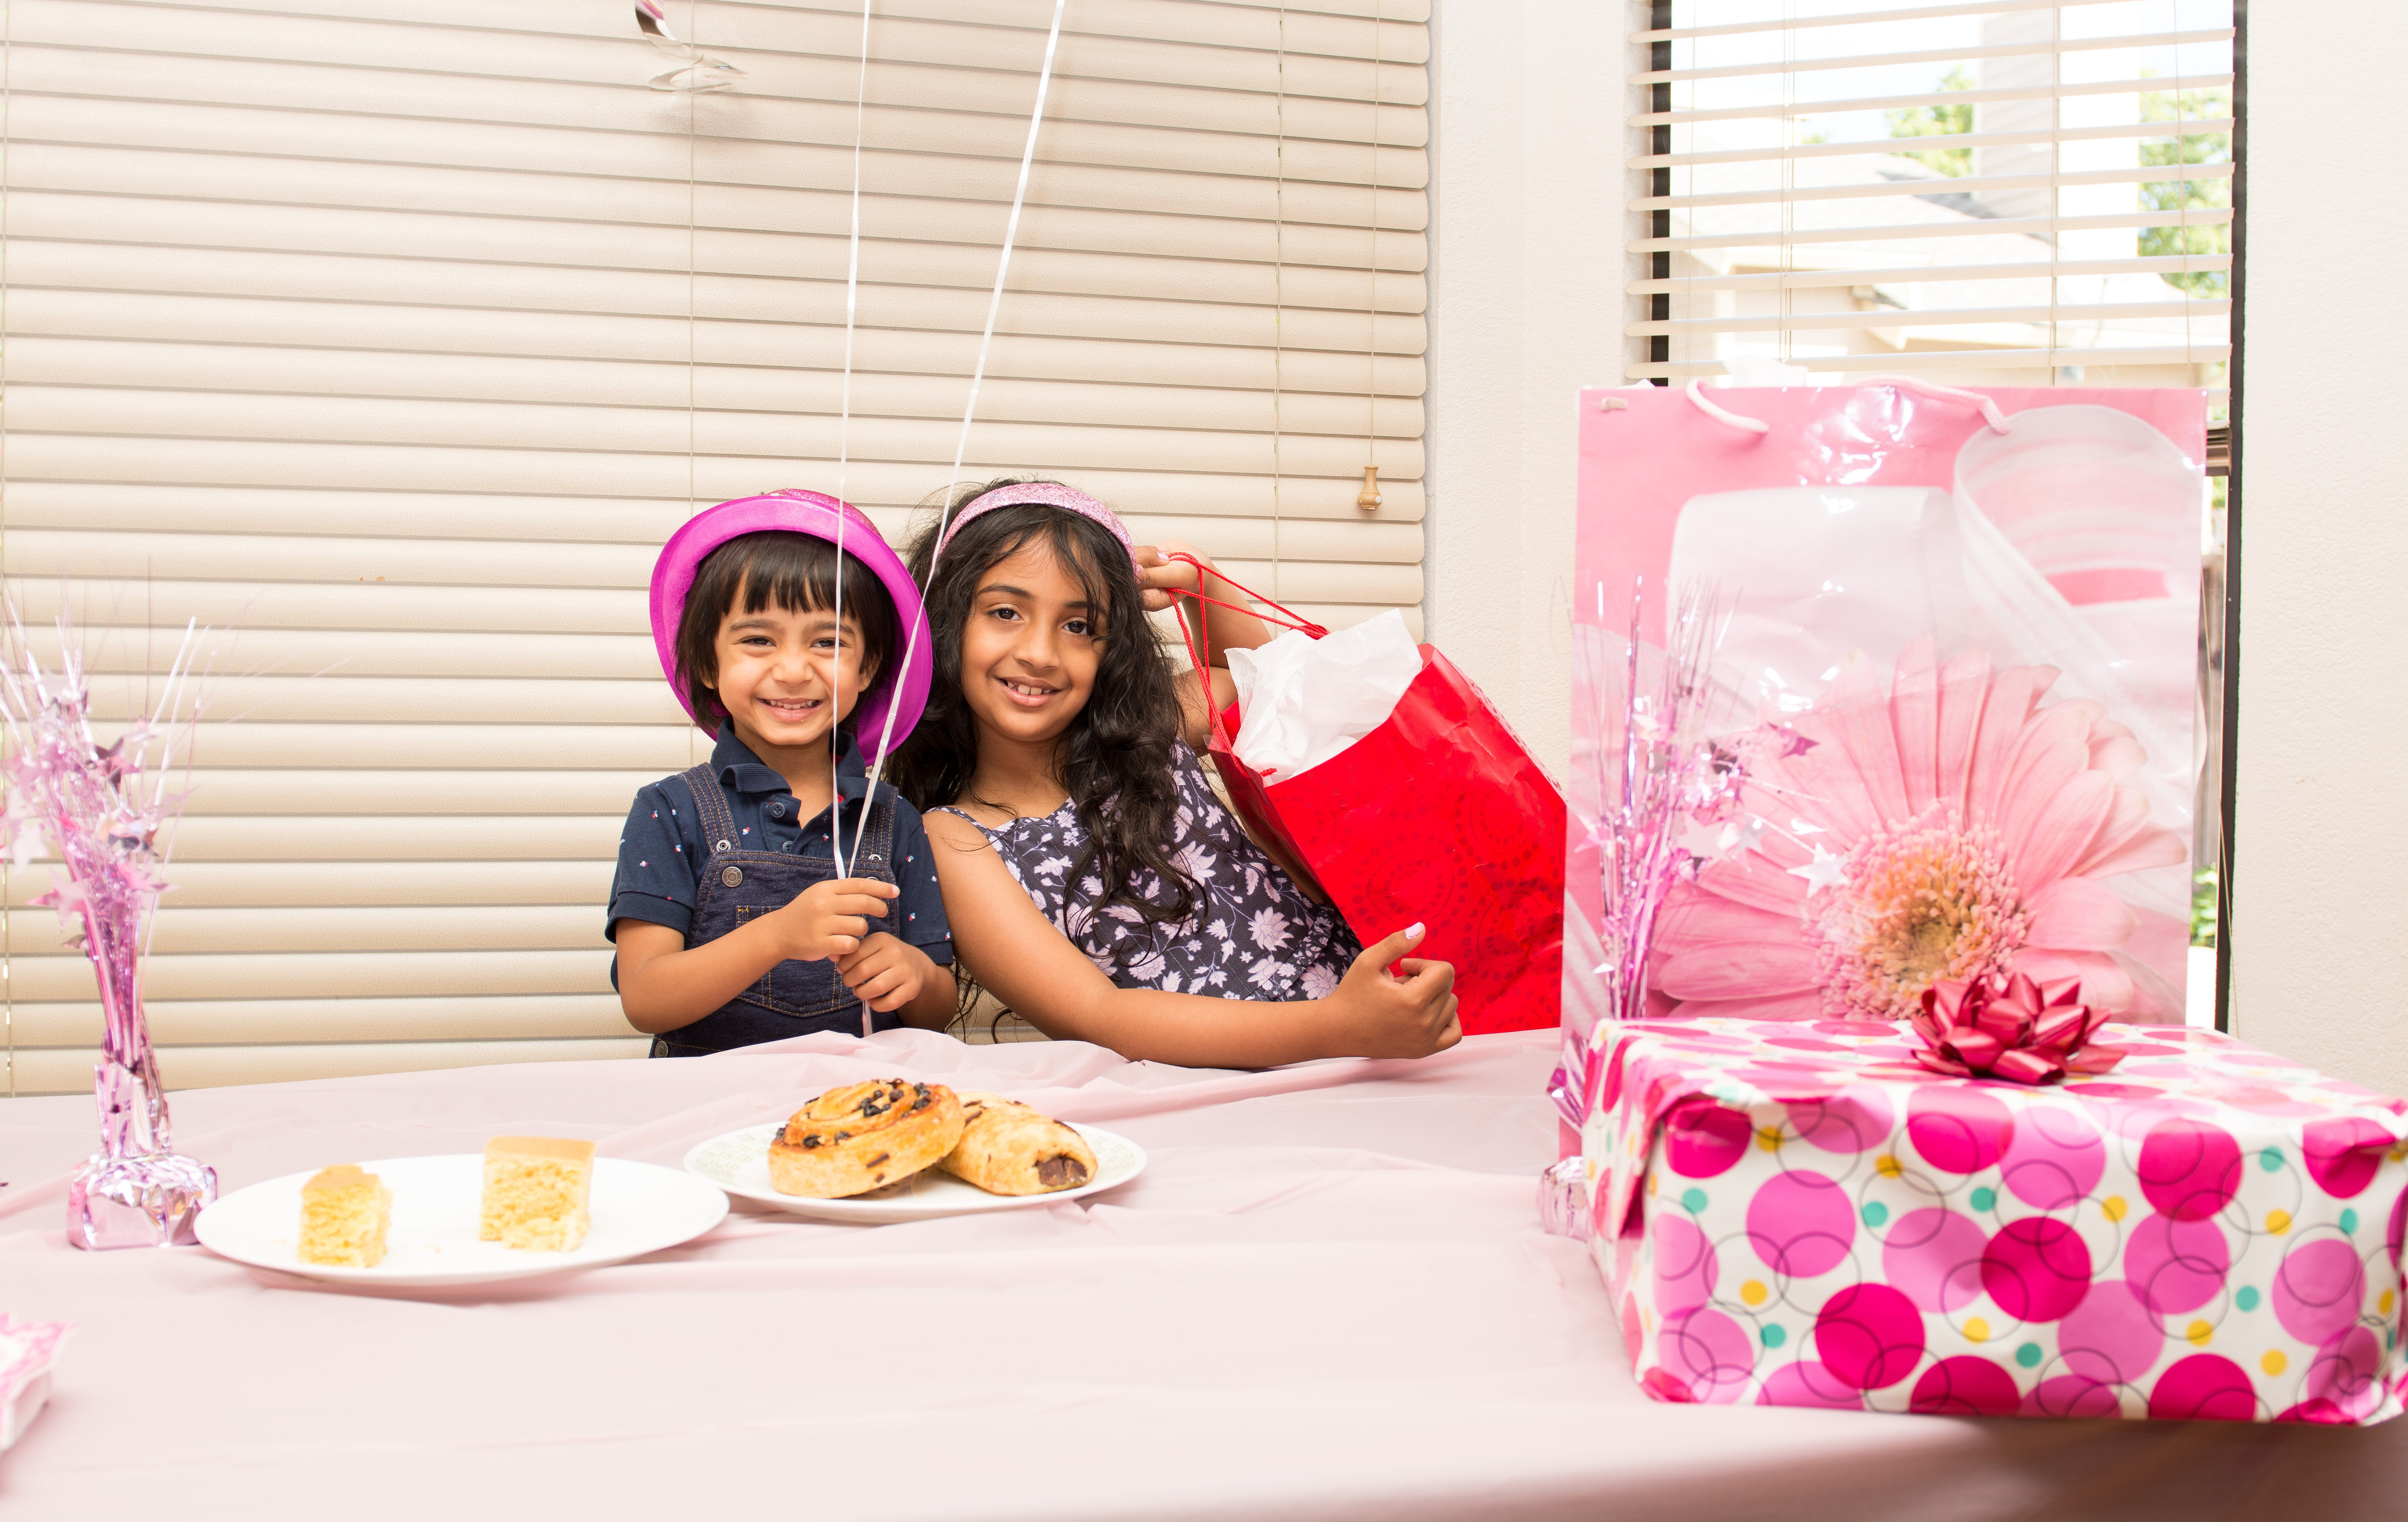 Two kids attend a birthday party